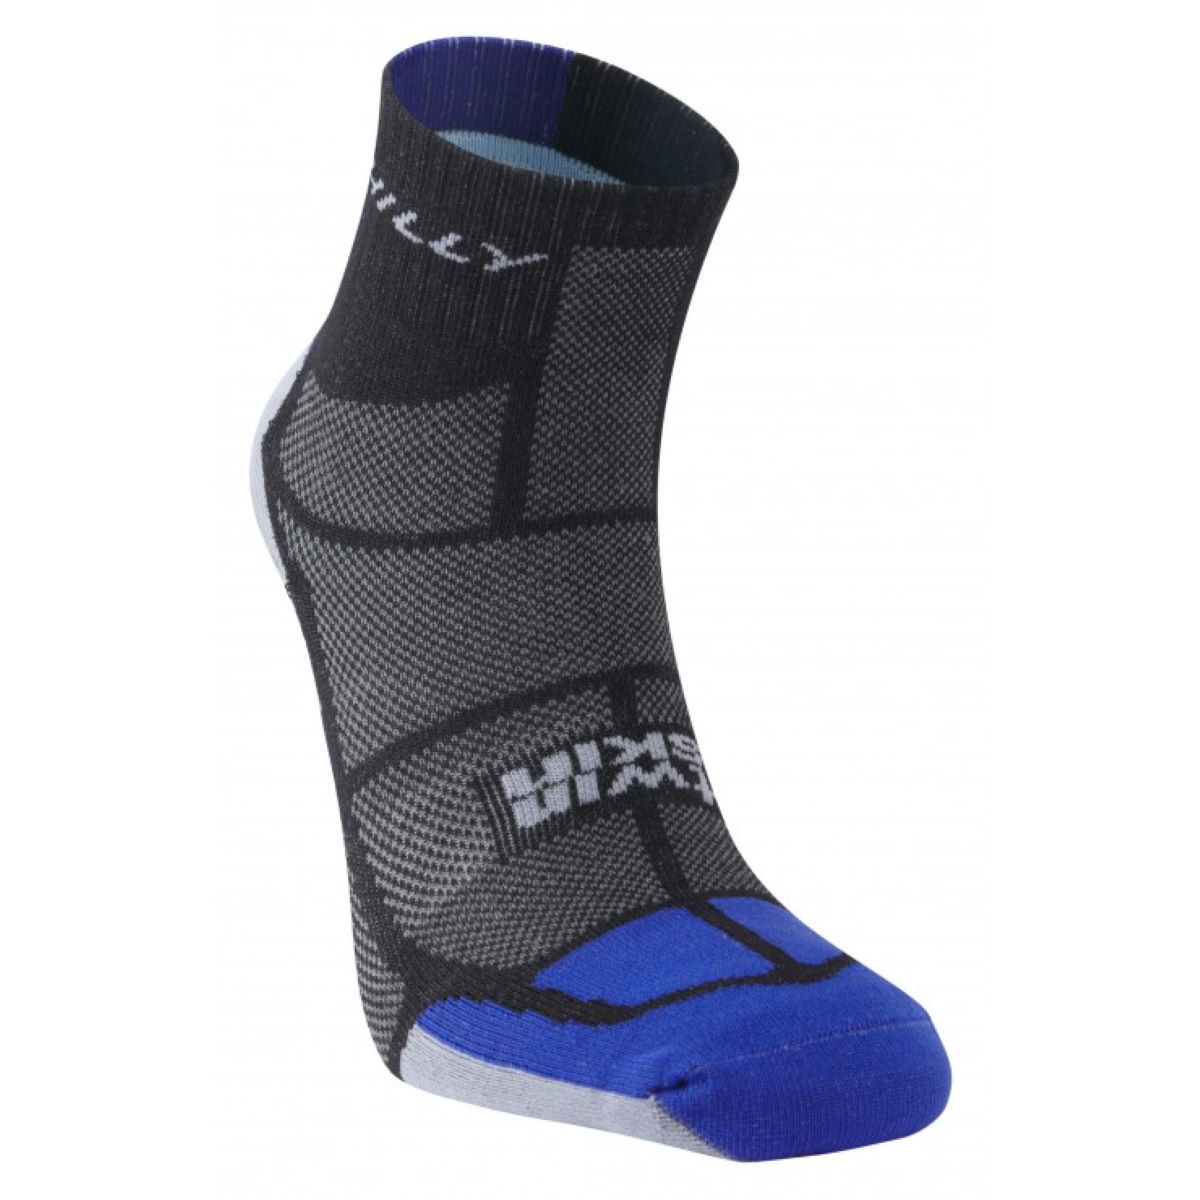 Chaussettes Hilly Twin Skin PE14 - S Black/Blue/Grey